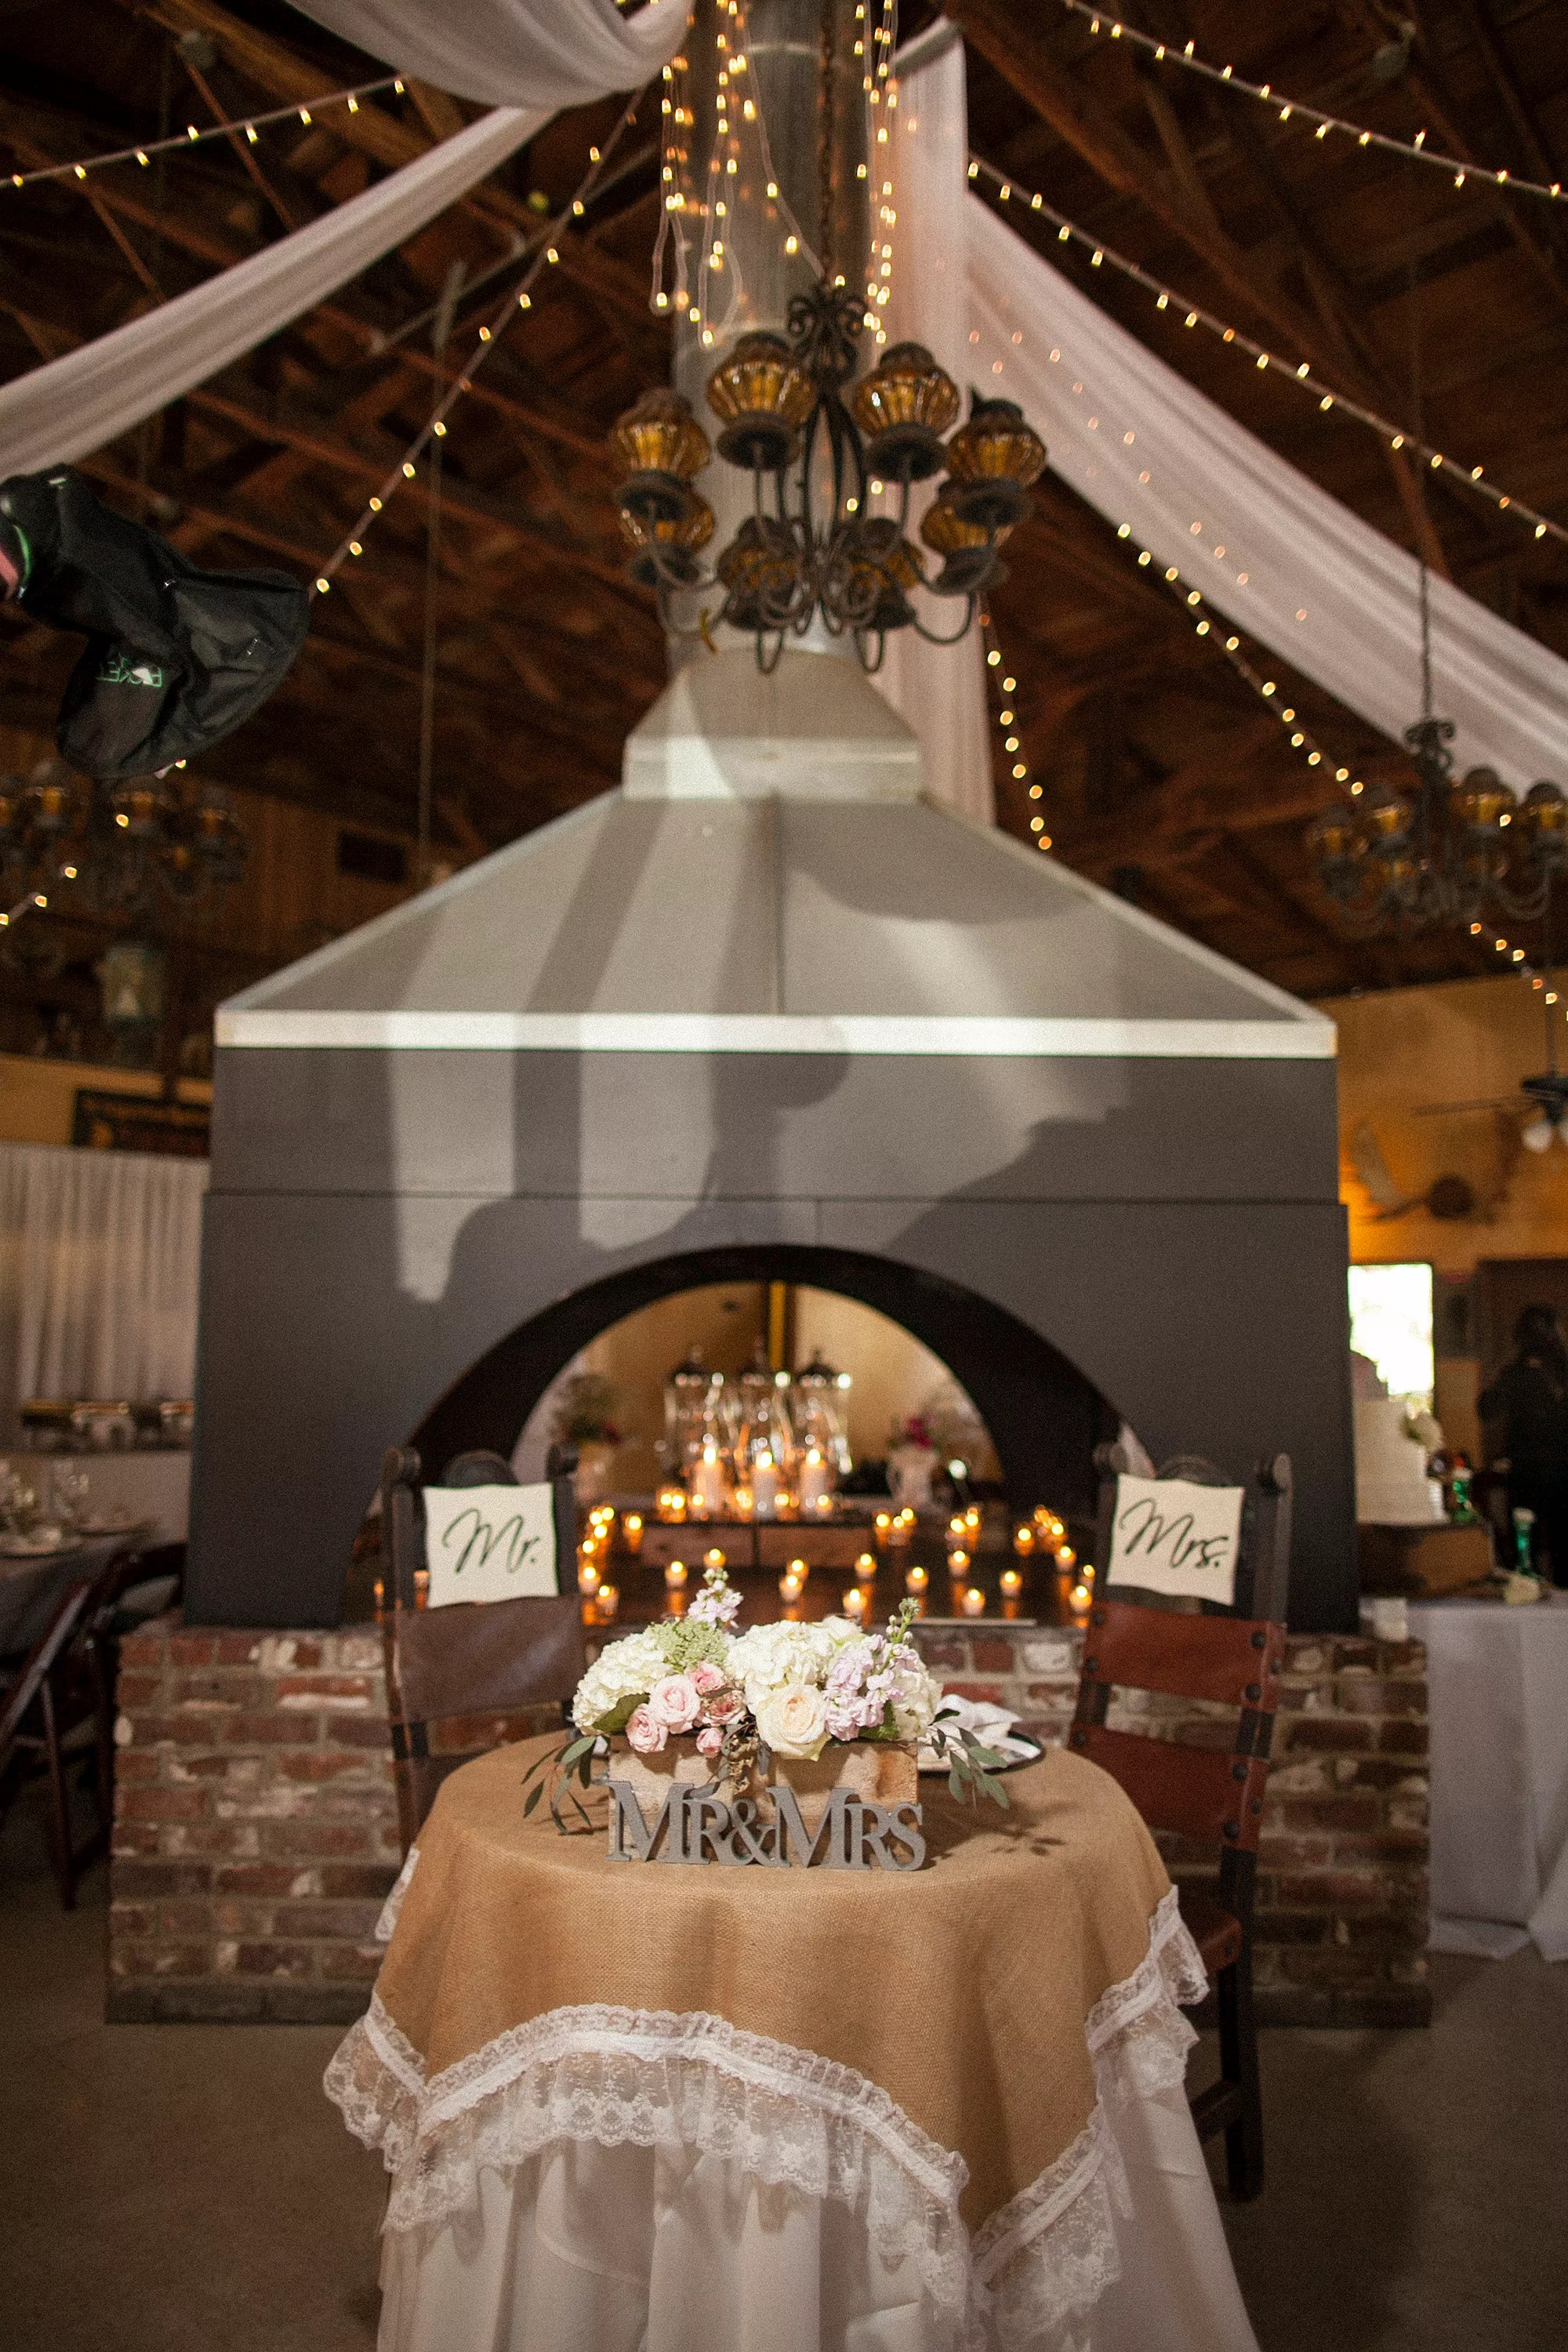 Rustic Sweetheart Table With Fireplace Backdrop